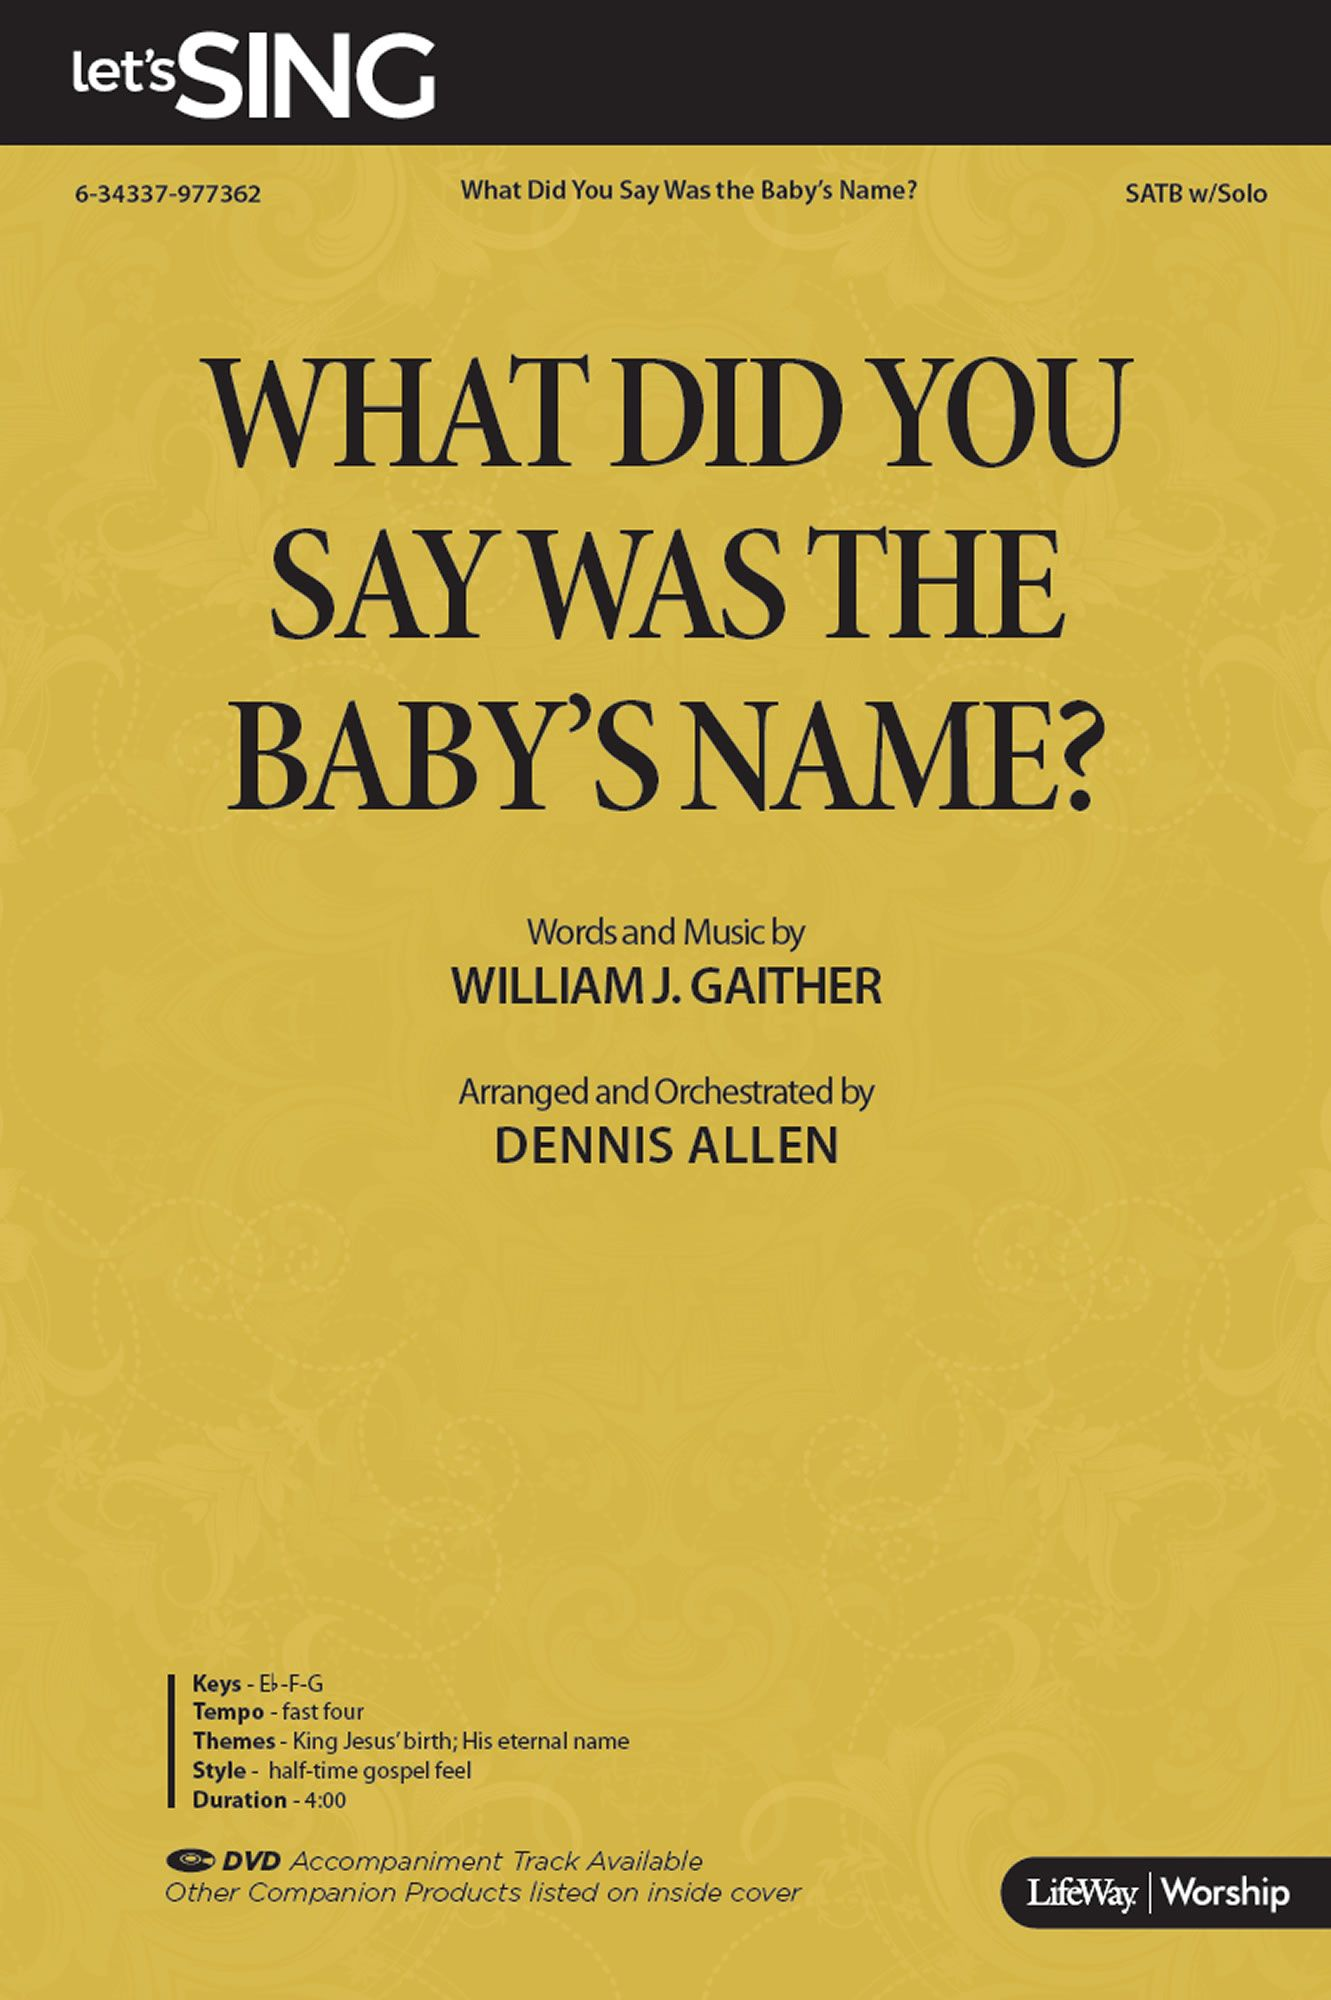 What Did You Say Was the Baby's Name?